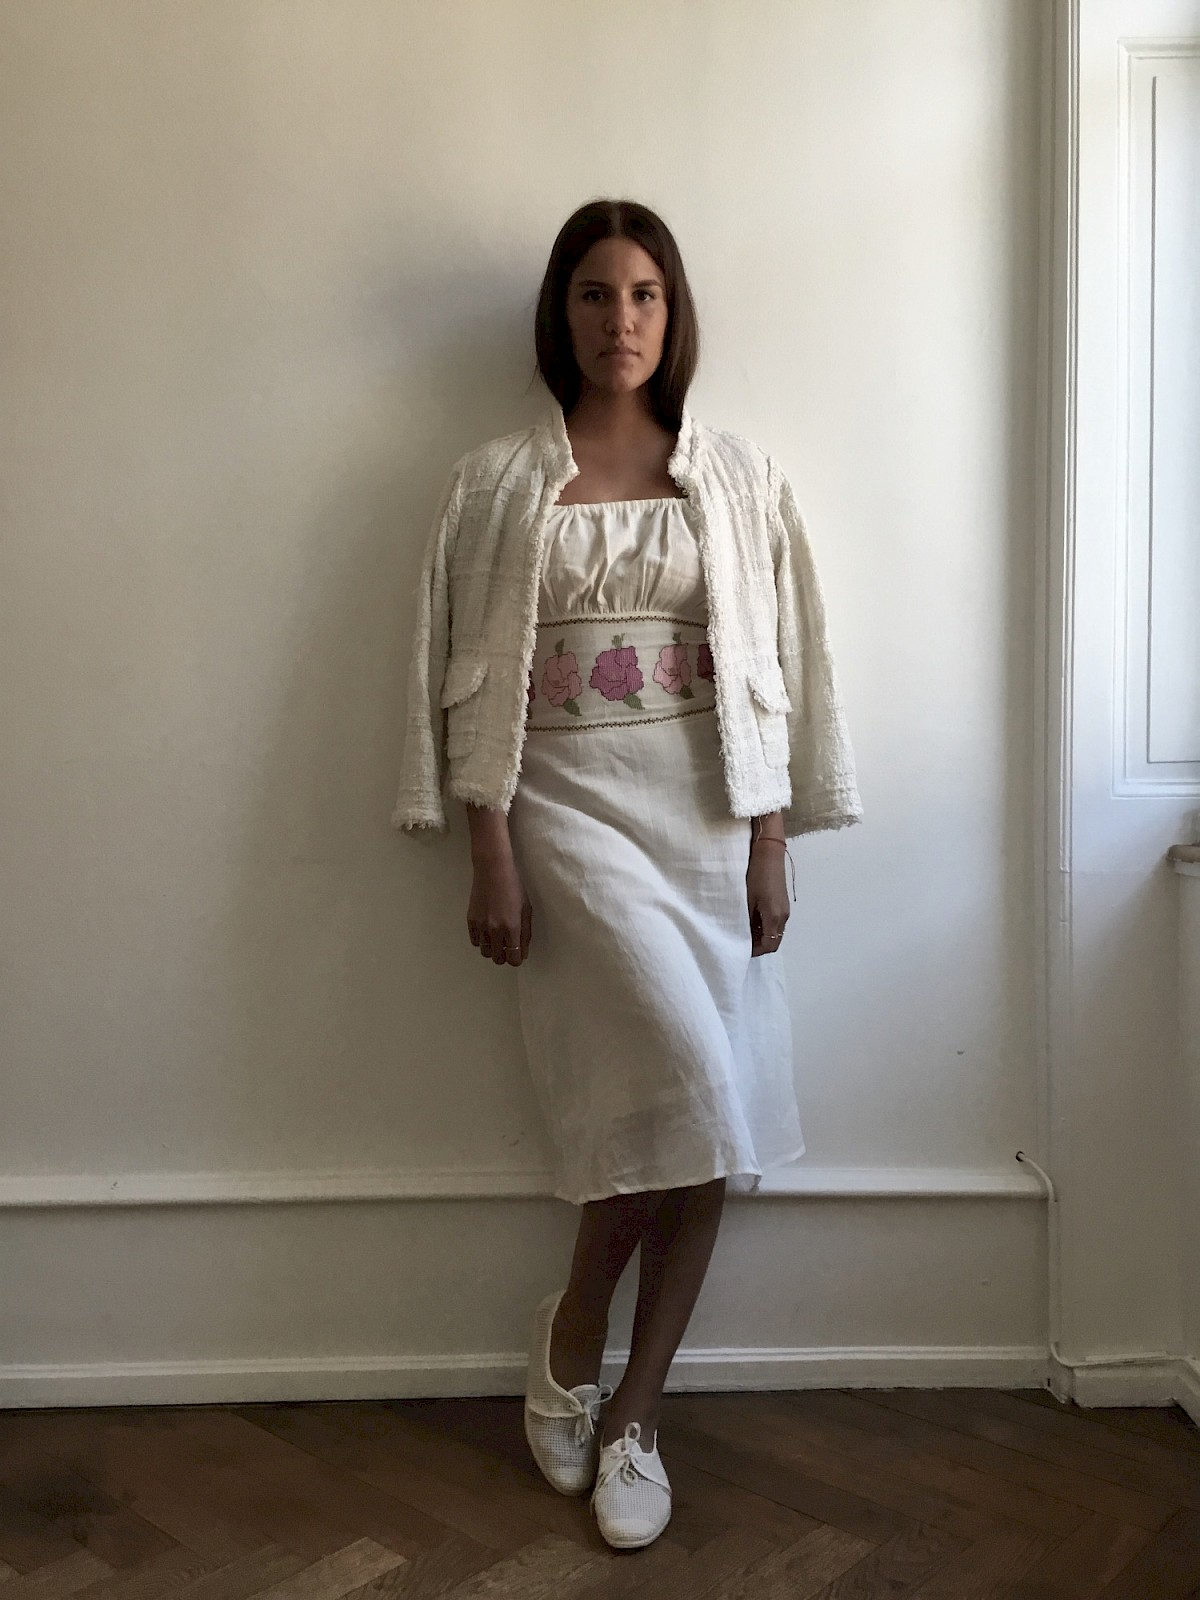 traditional turkish summer dress boho bohemian folklore folk embroidery Tracht off white linen marant romantic dreamy